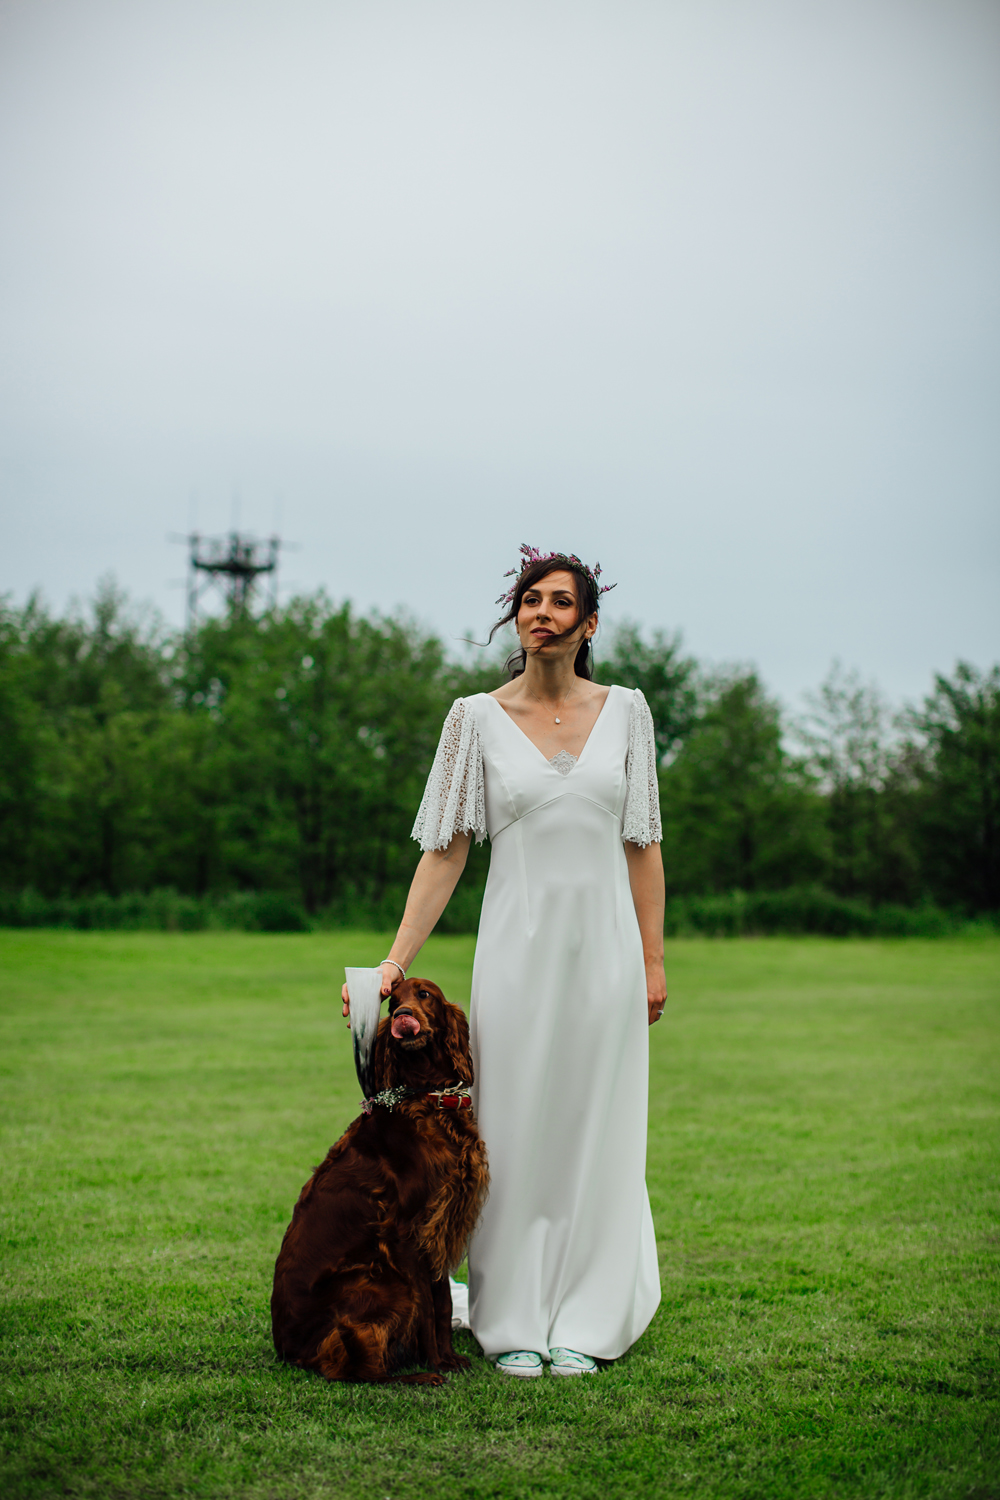 Rustic Vintage wedding photographers sheffield  (97).jpg